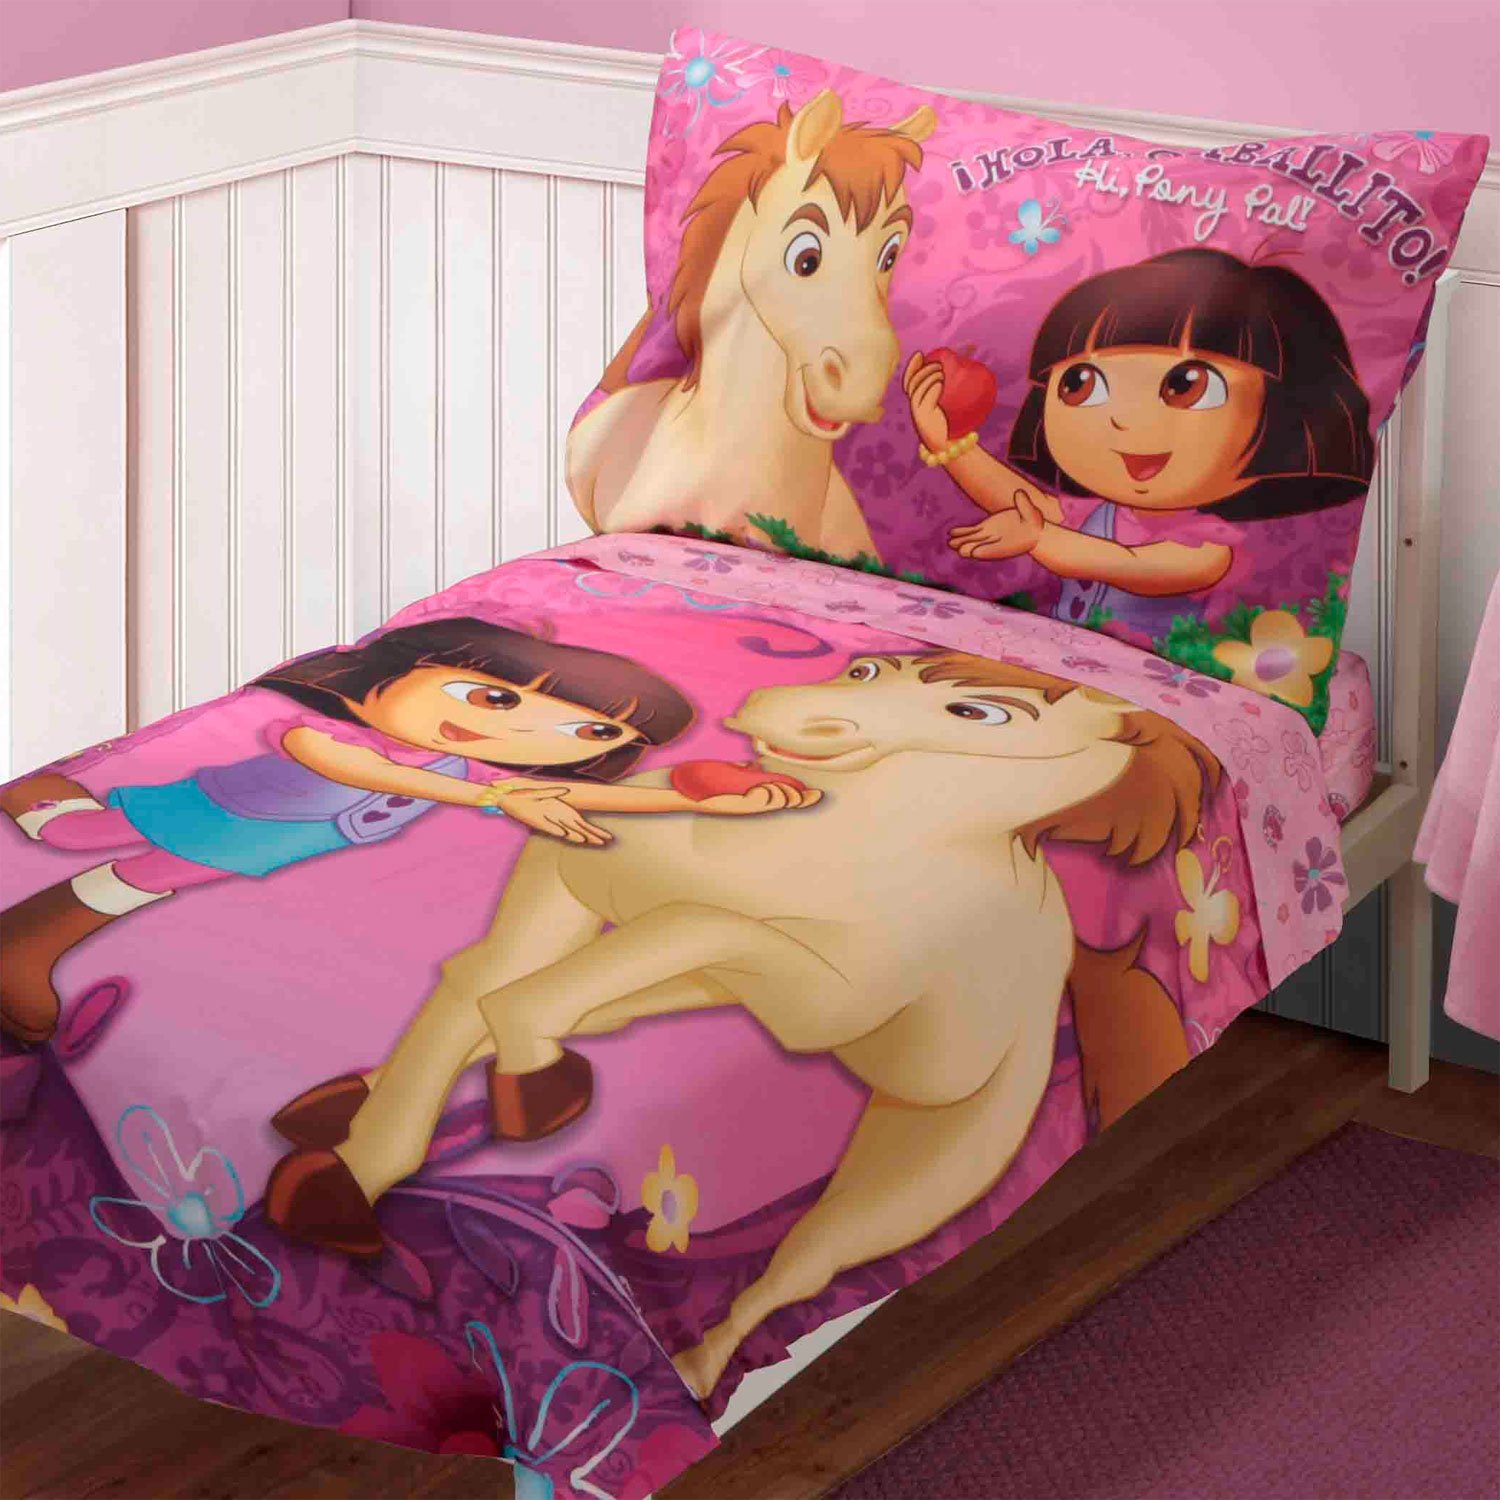 Dora Explorer Pony Pal 4 Piece Toddler Bedding Set